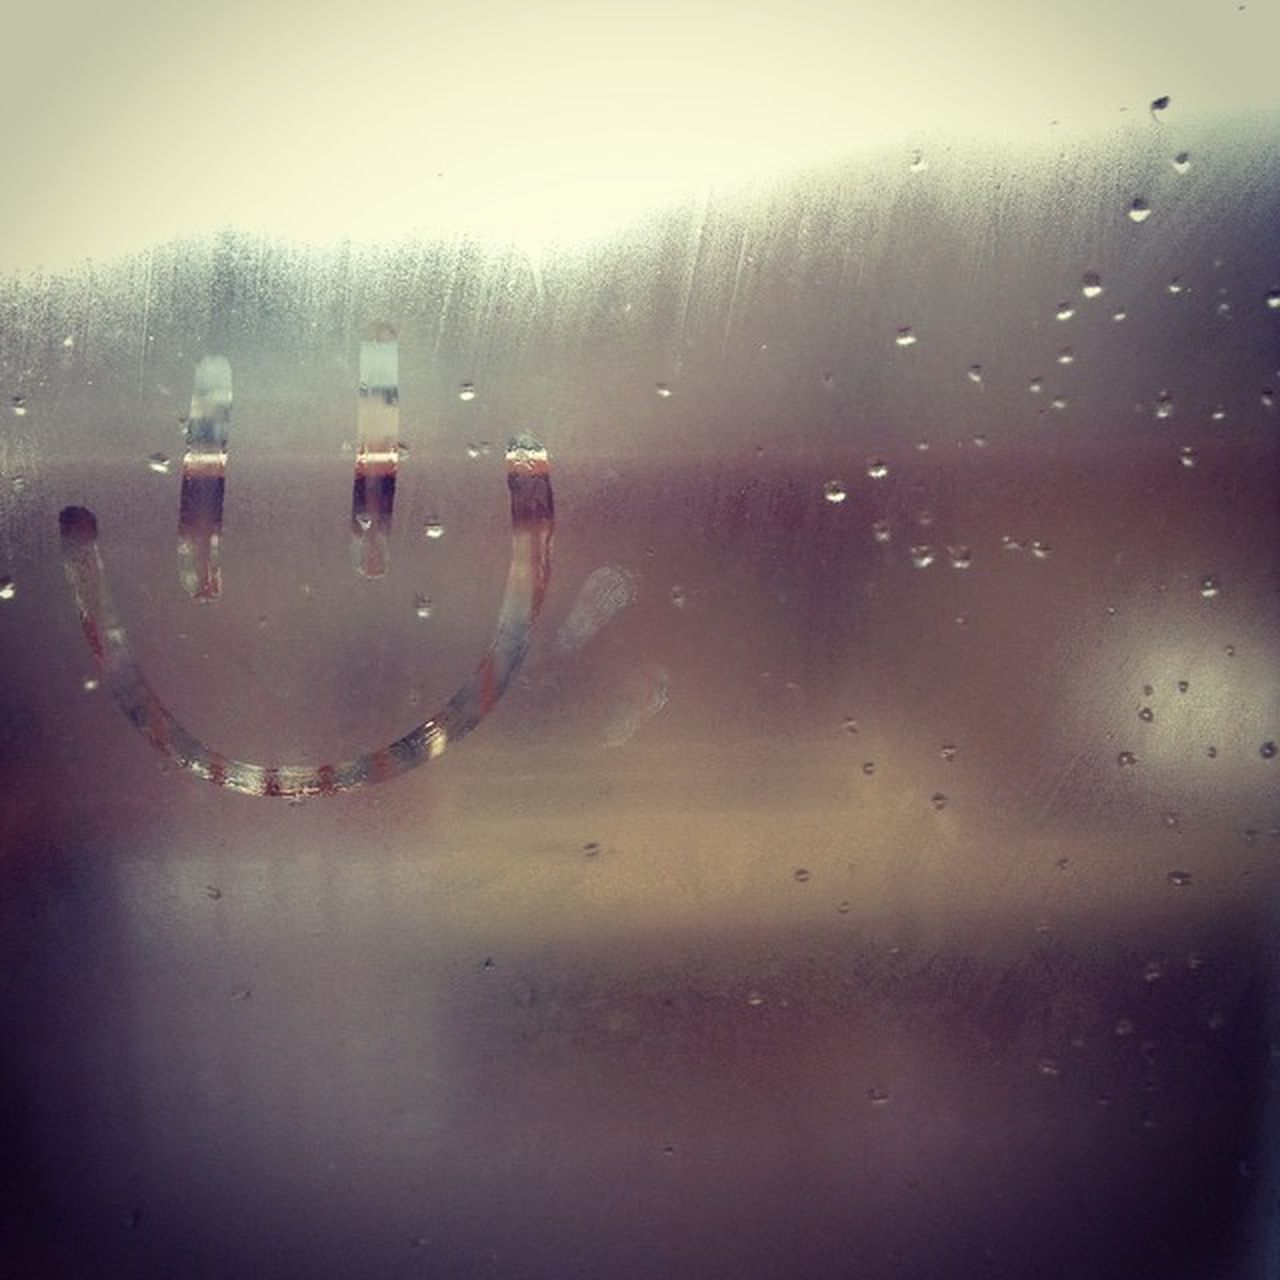 But my breath fogged up the glass, so I drew in a face and I laughed! ? Happyhouse Makingfood Foggedupglass FamilyTime backporch